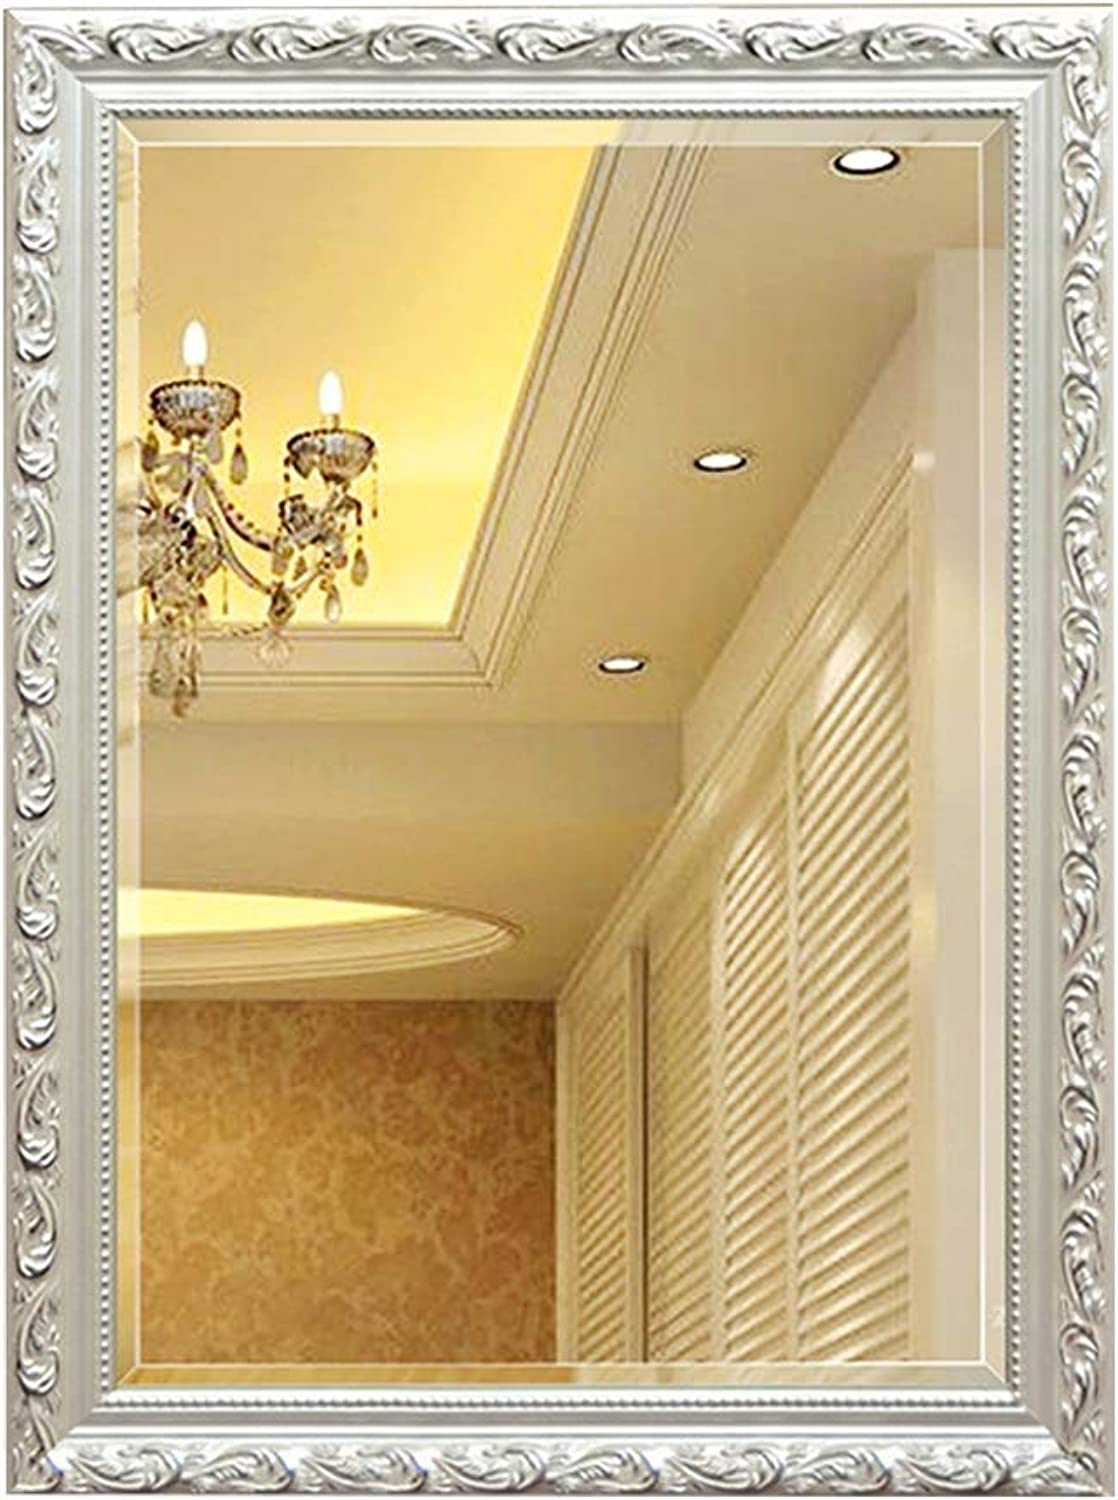 Mirror Wall Hanging Mirror White Wooden Frame Bathroom Mirror European Bathroom Bathroom Mirror Wall Hanging Makeup Mirror Home Square Mirror HD (color   White, Size   60  45cm)